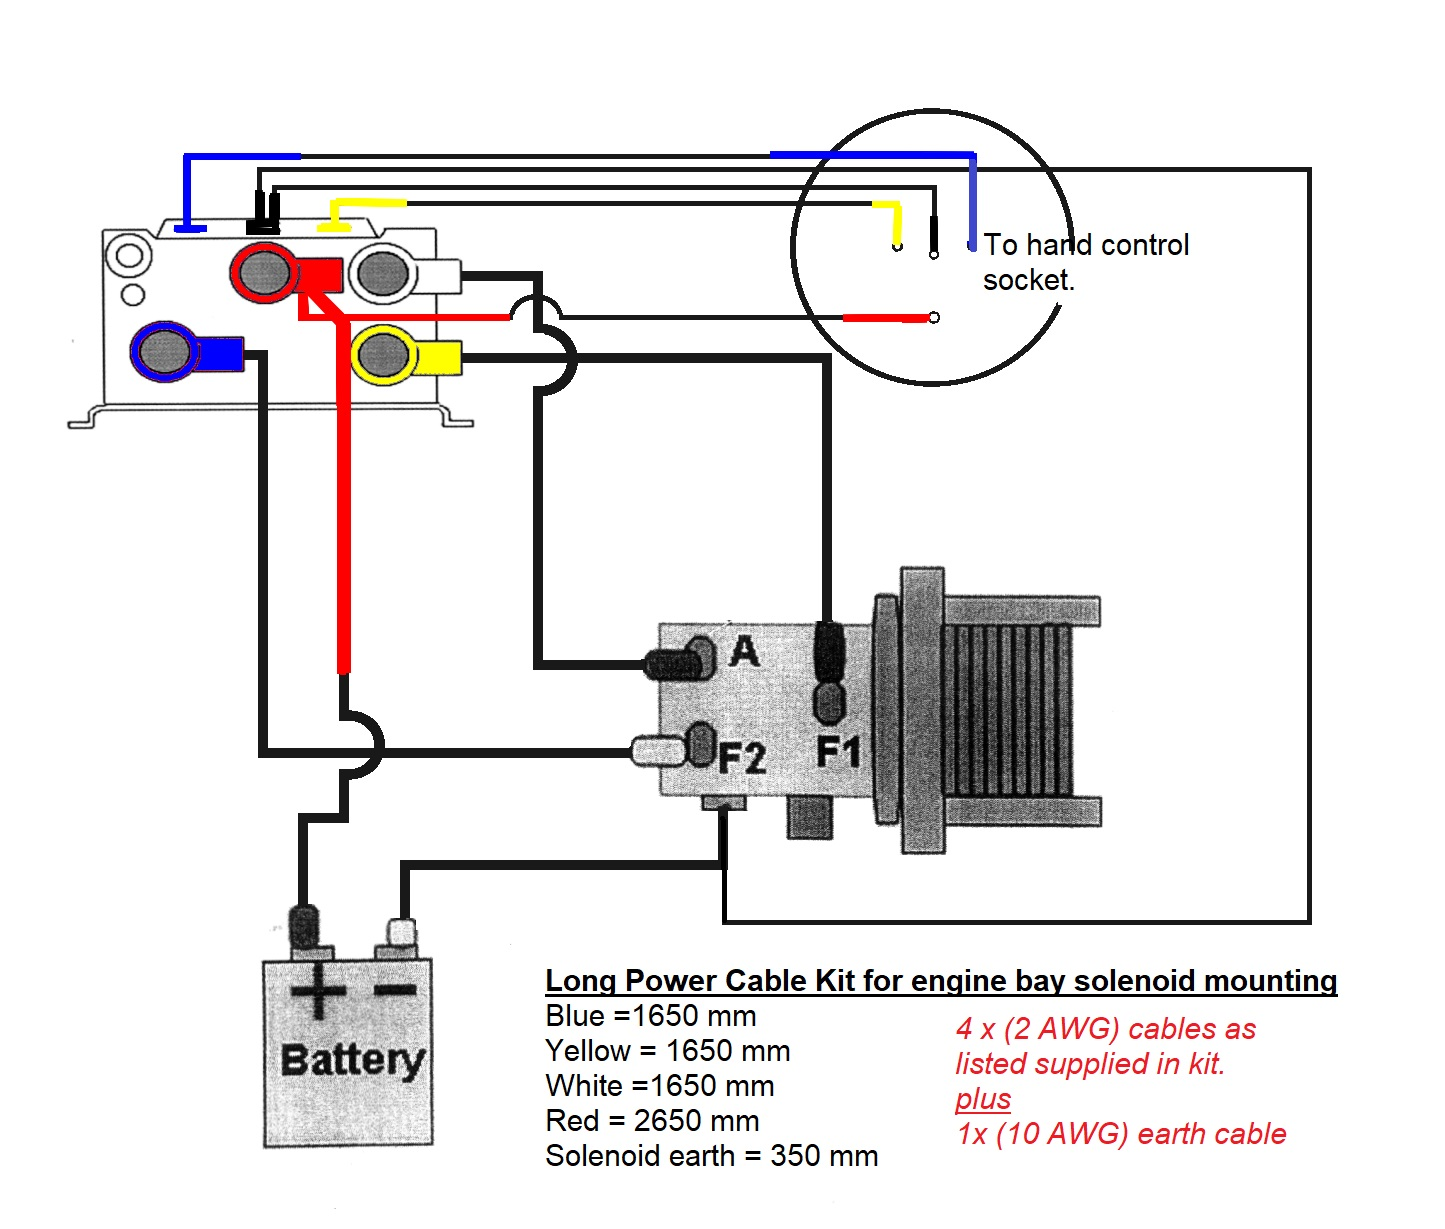 Winch Wiring Diagram Wiring Diagram Online 240 Volt Wiring Diagram 110 Volt  Winch Wiring Diagram